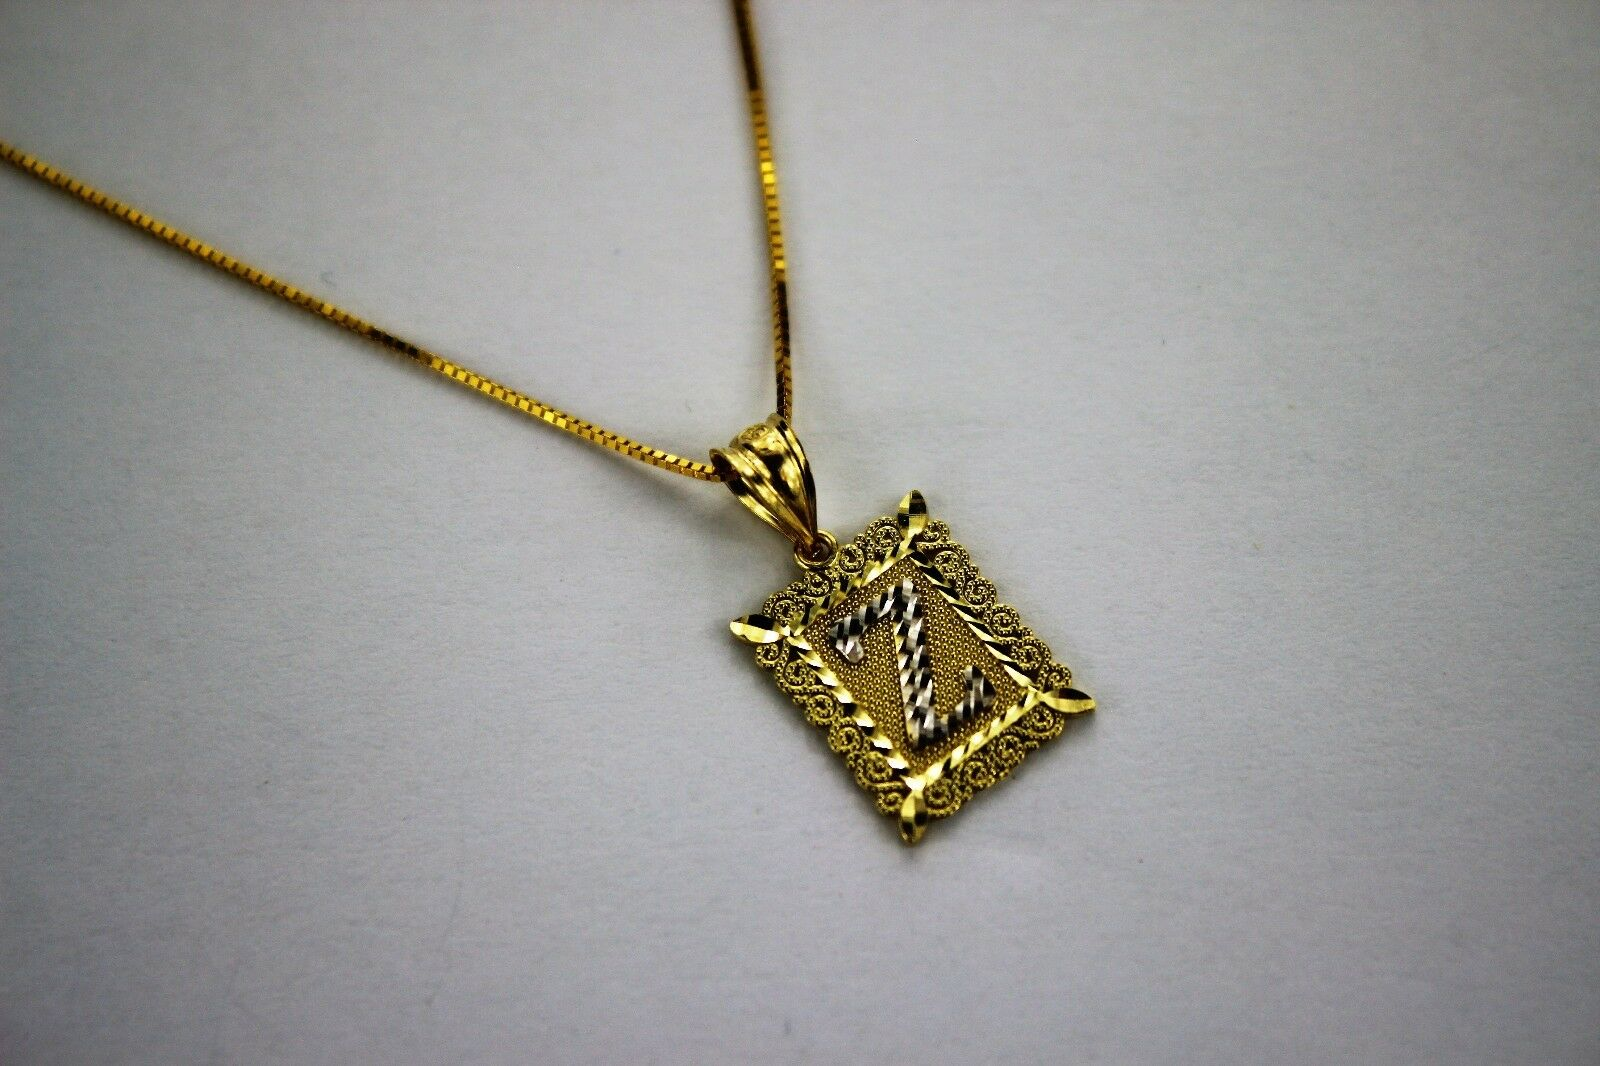 10K gold Initial Pendant Charm Boy Men and or Box Chain